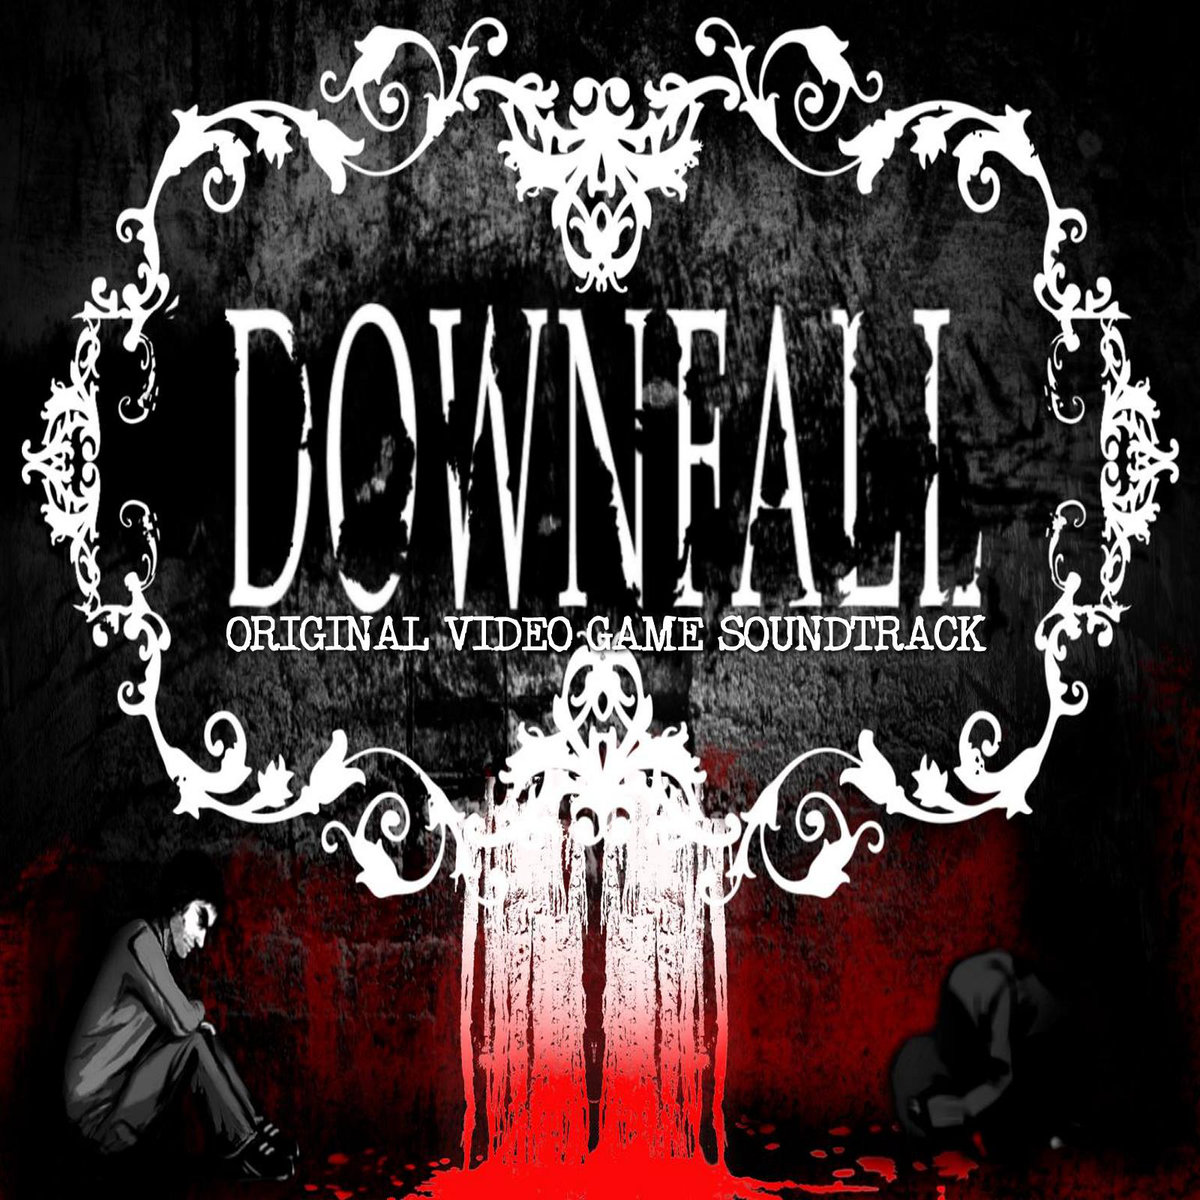 Warriors Gate Movie Review: Downfall Original Video Game Soundtrack